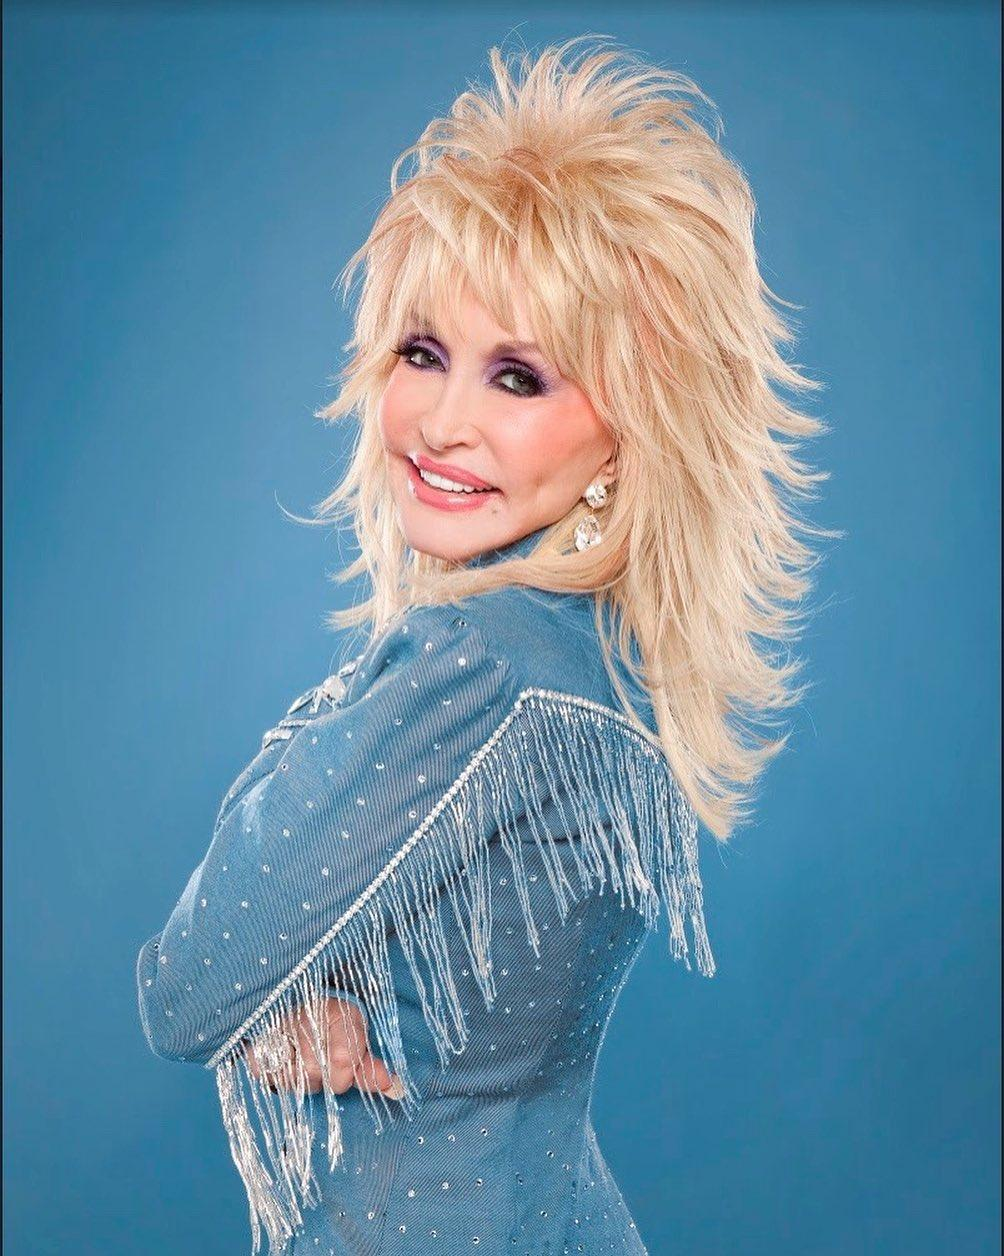 A photo of Dolly Parton in a blue outfit